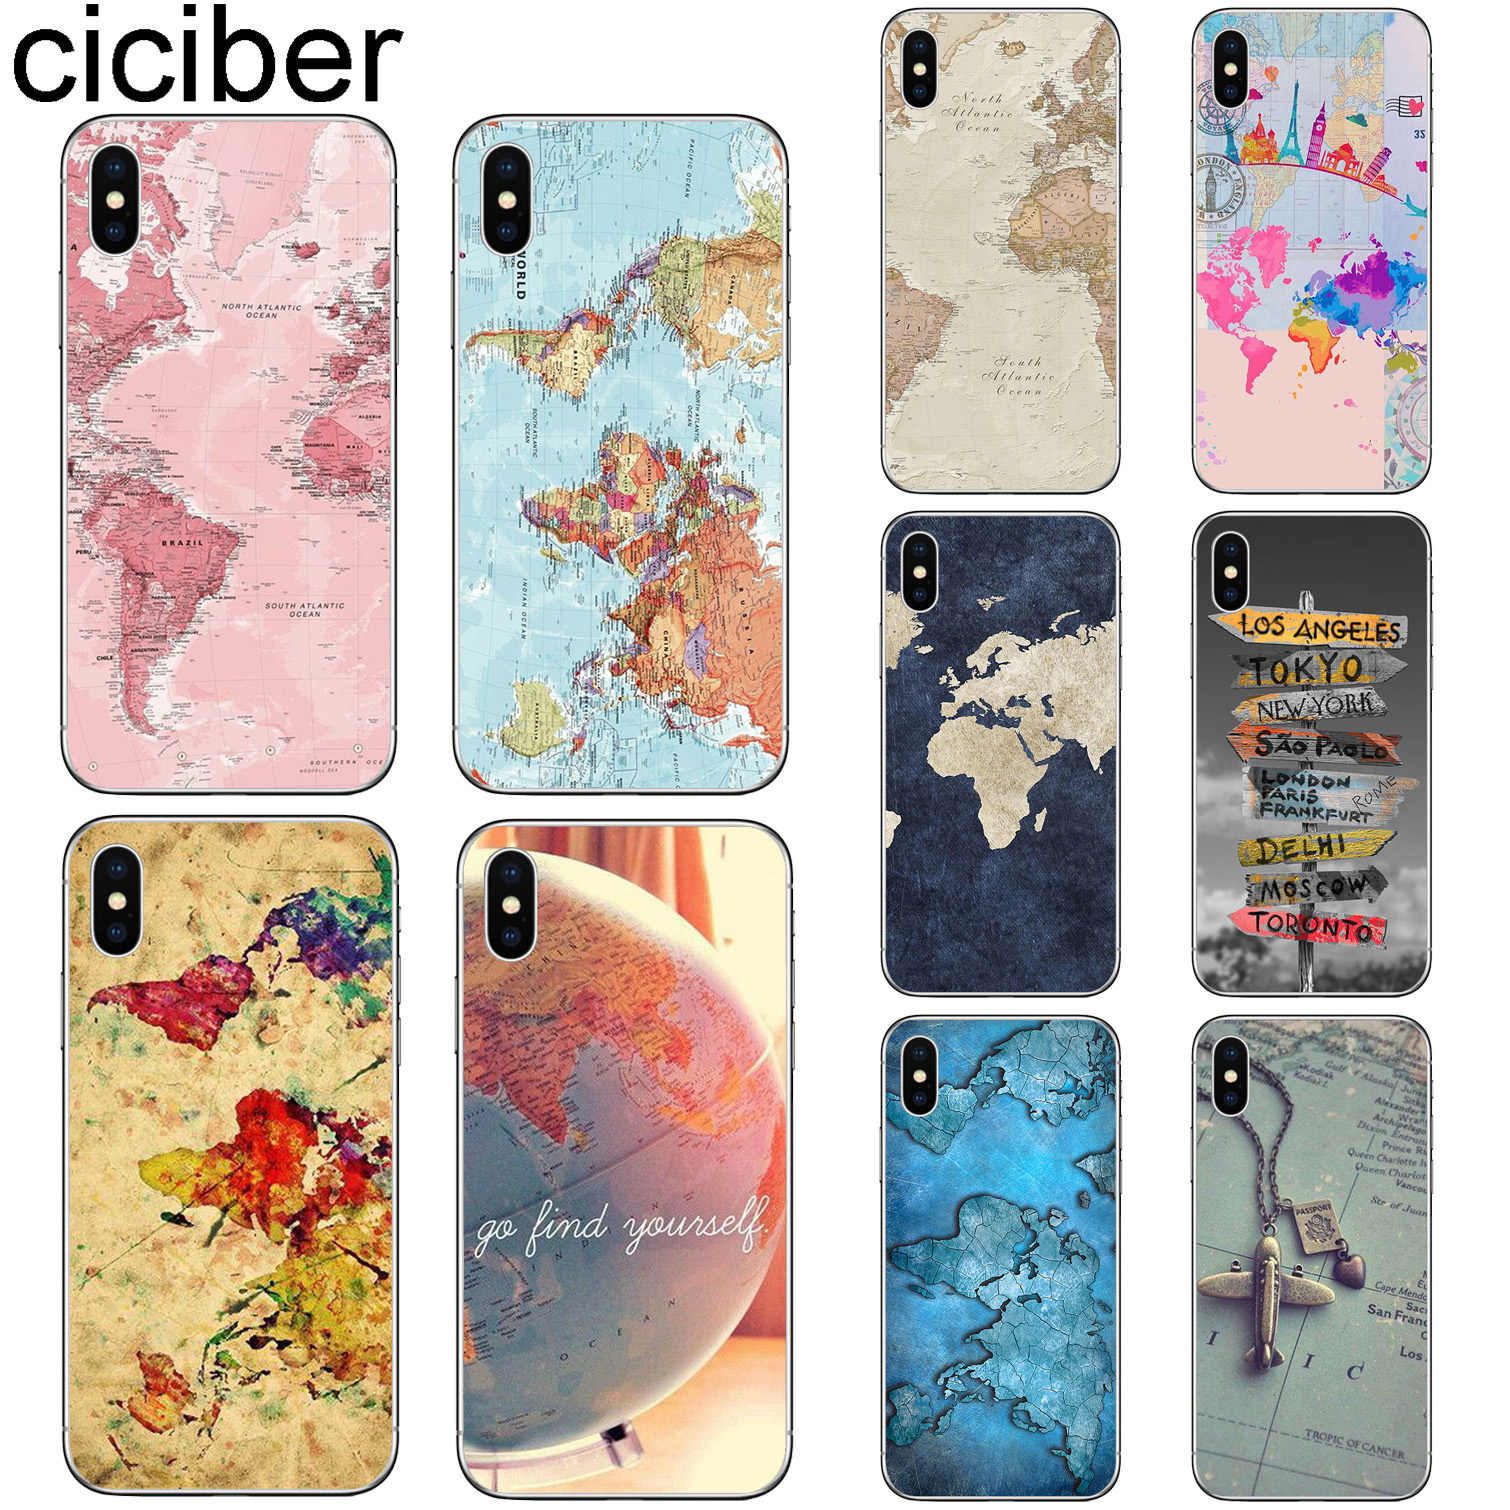 ciciber For Iphone 7 8 6 6S Plus 5S SE X XR XS MAX Cover Soft Silicone TPU for iphone 11 Pro Max Phone Case World Map Travel